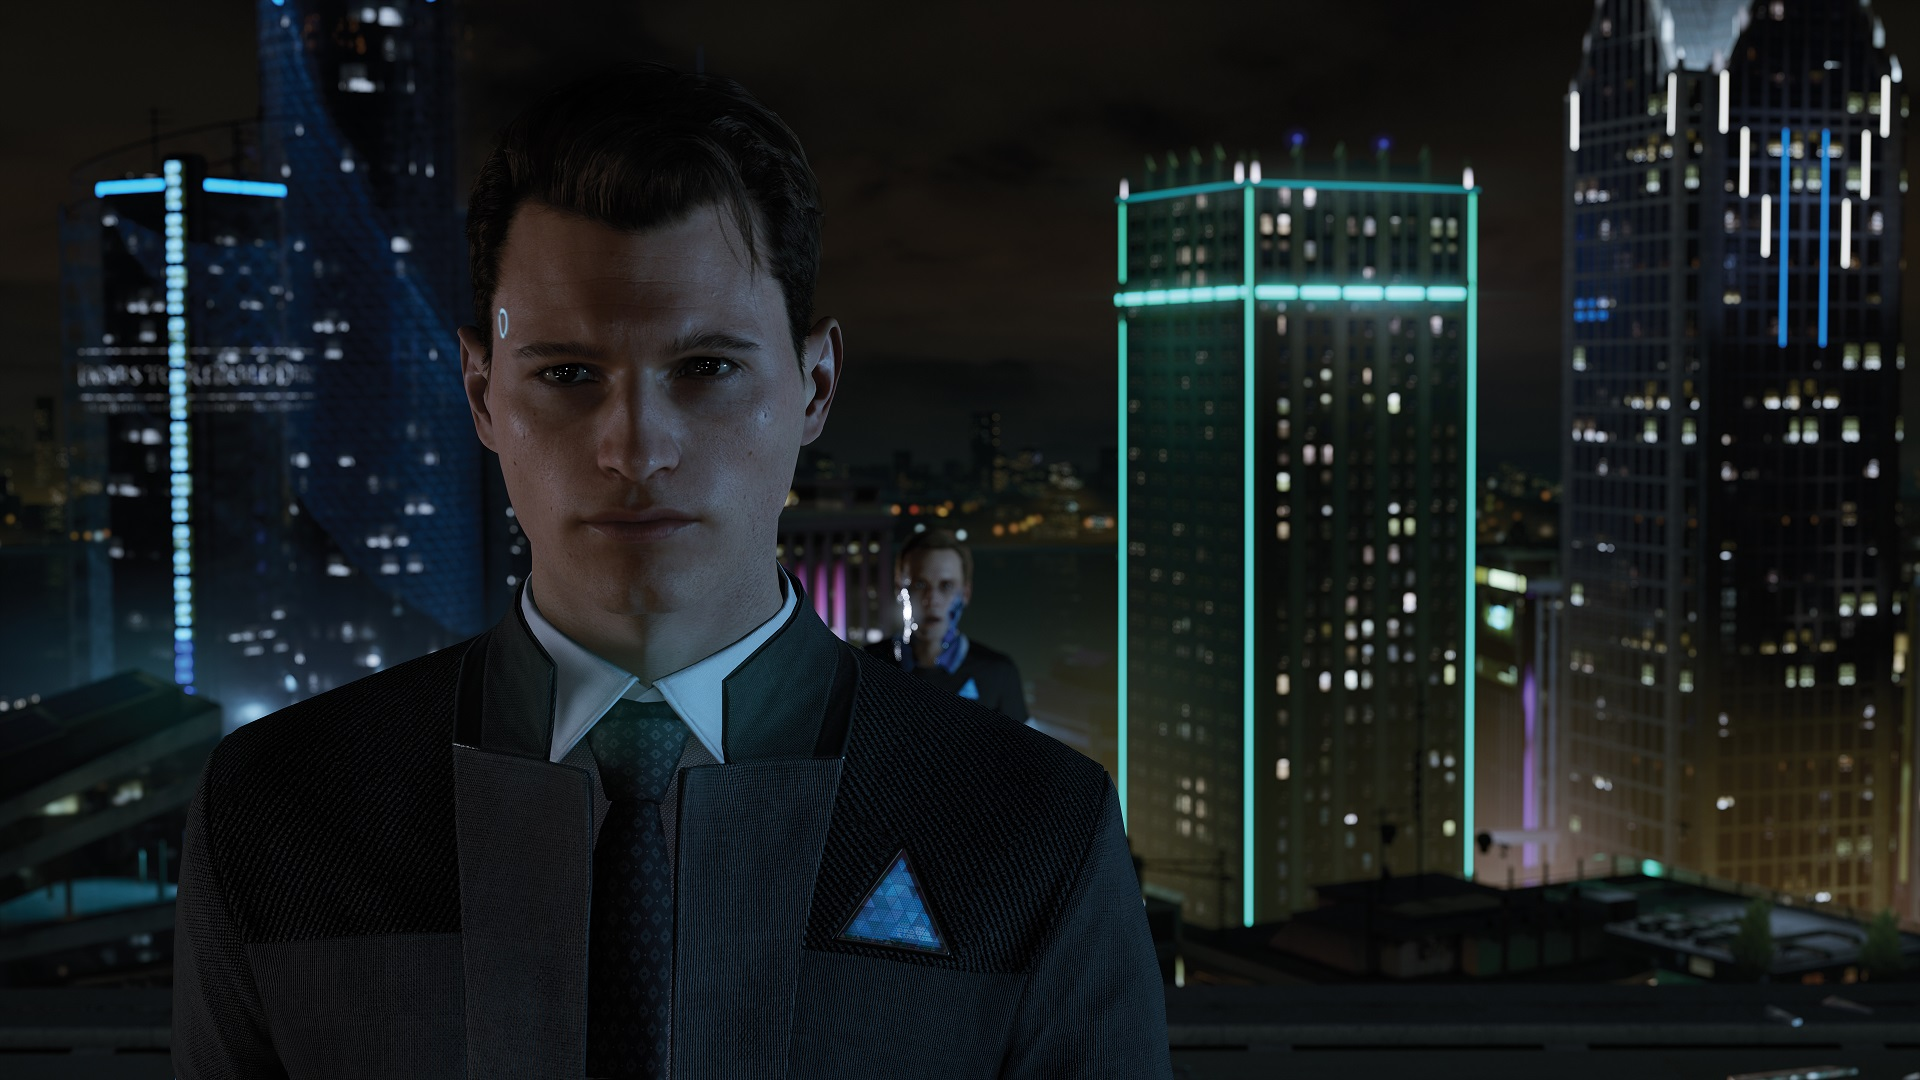 Connor Detroit Become Human Wallpaper: Detroit: Become Human PSX 2017 Preview: Hello World